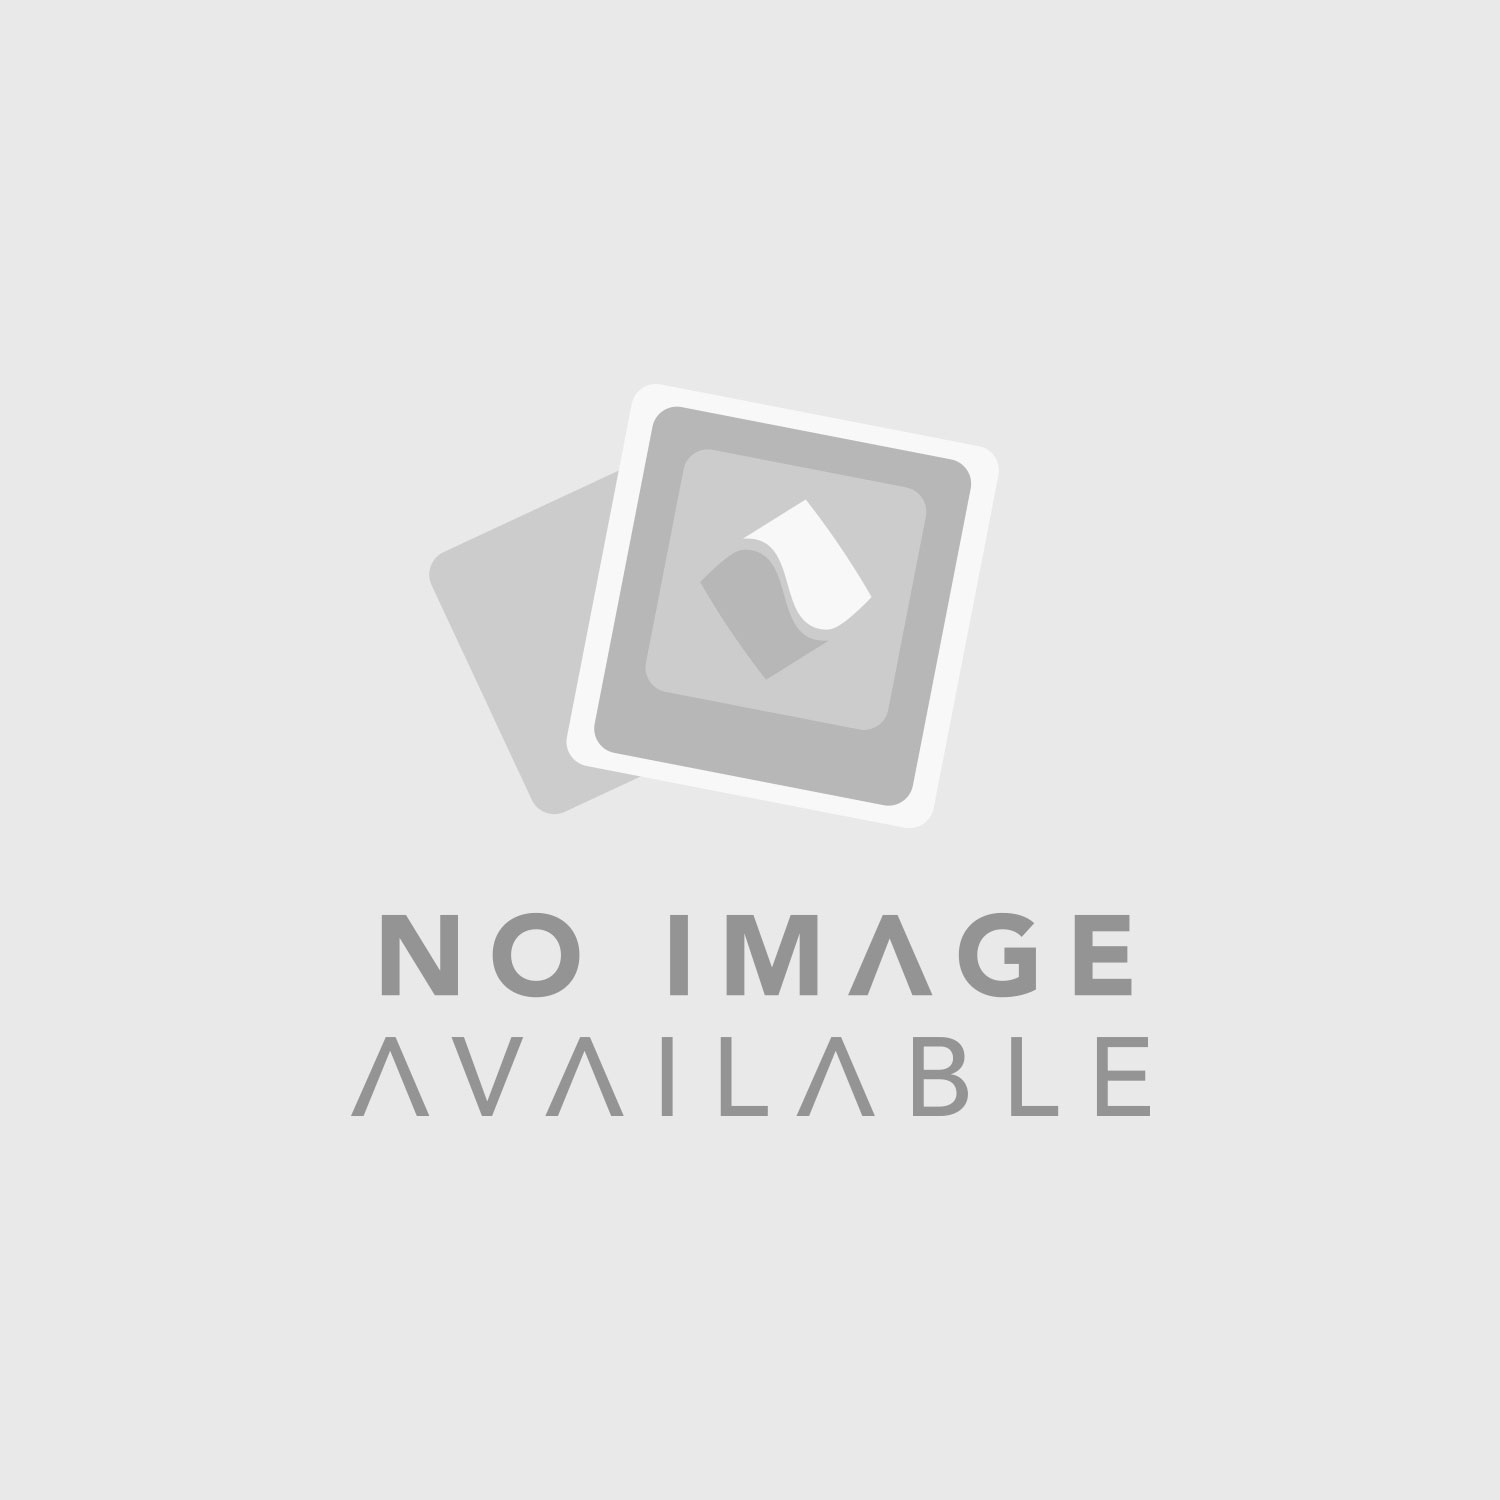 Eartec SSTSC5000LP Two-Way Radio System with SST Headsets